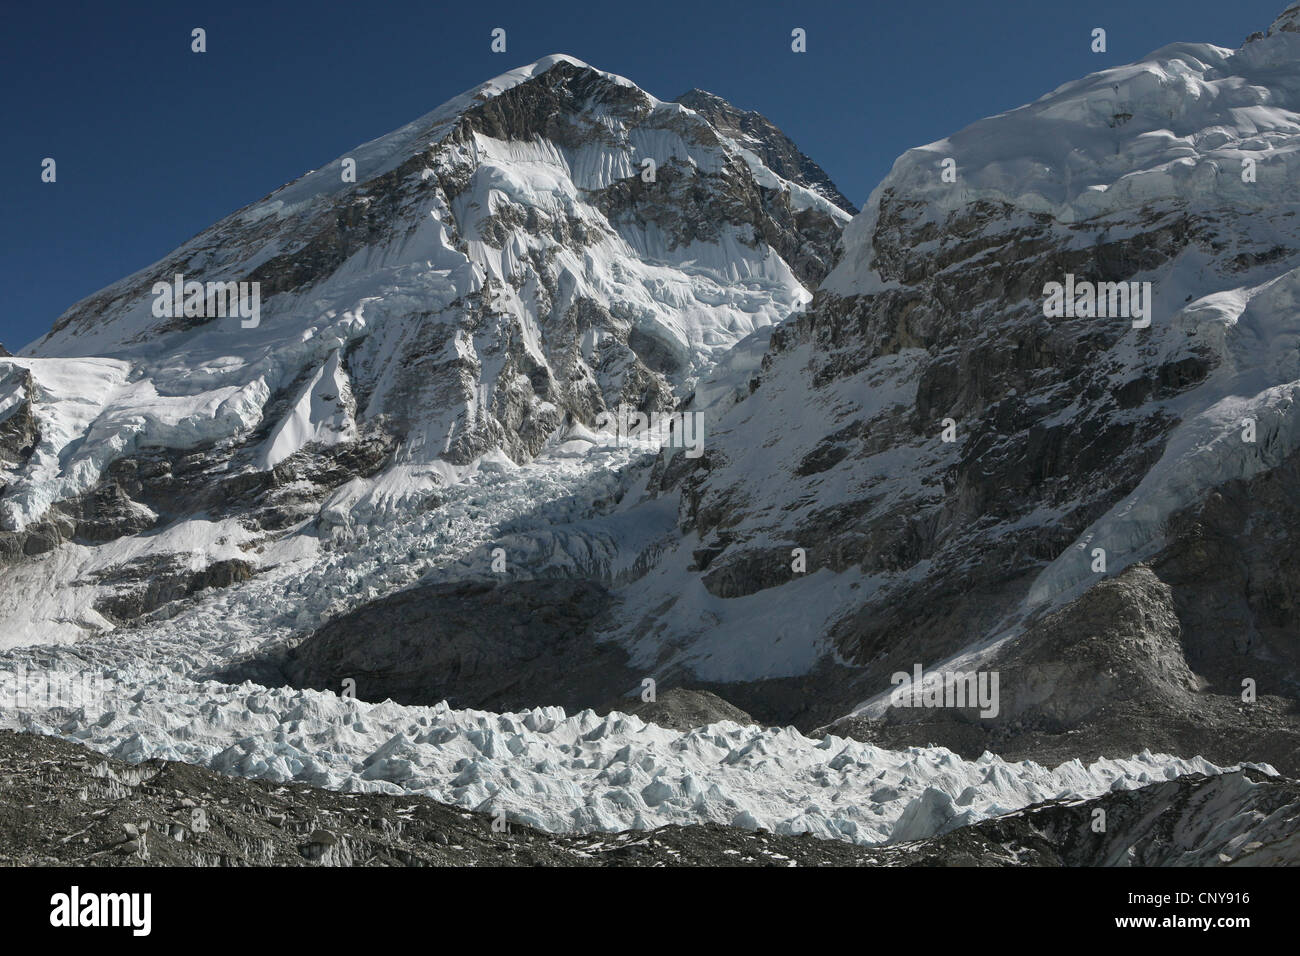 Mount Everest (8,848 m) and Khumbu icefall in Khumbu region in the Himalayas, Nepal. View from the Everest Base - Stock Image